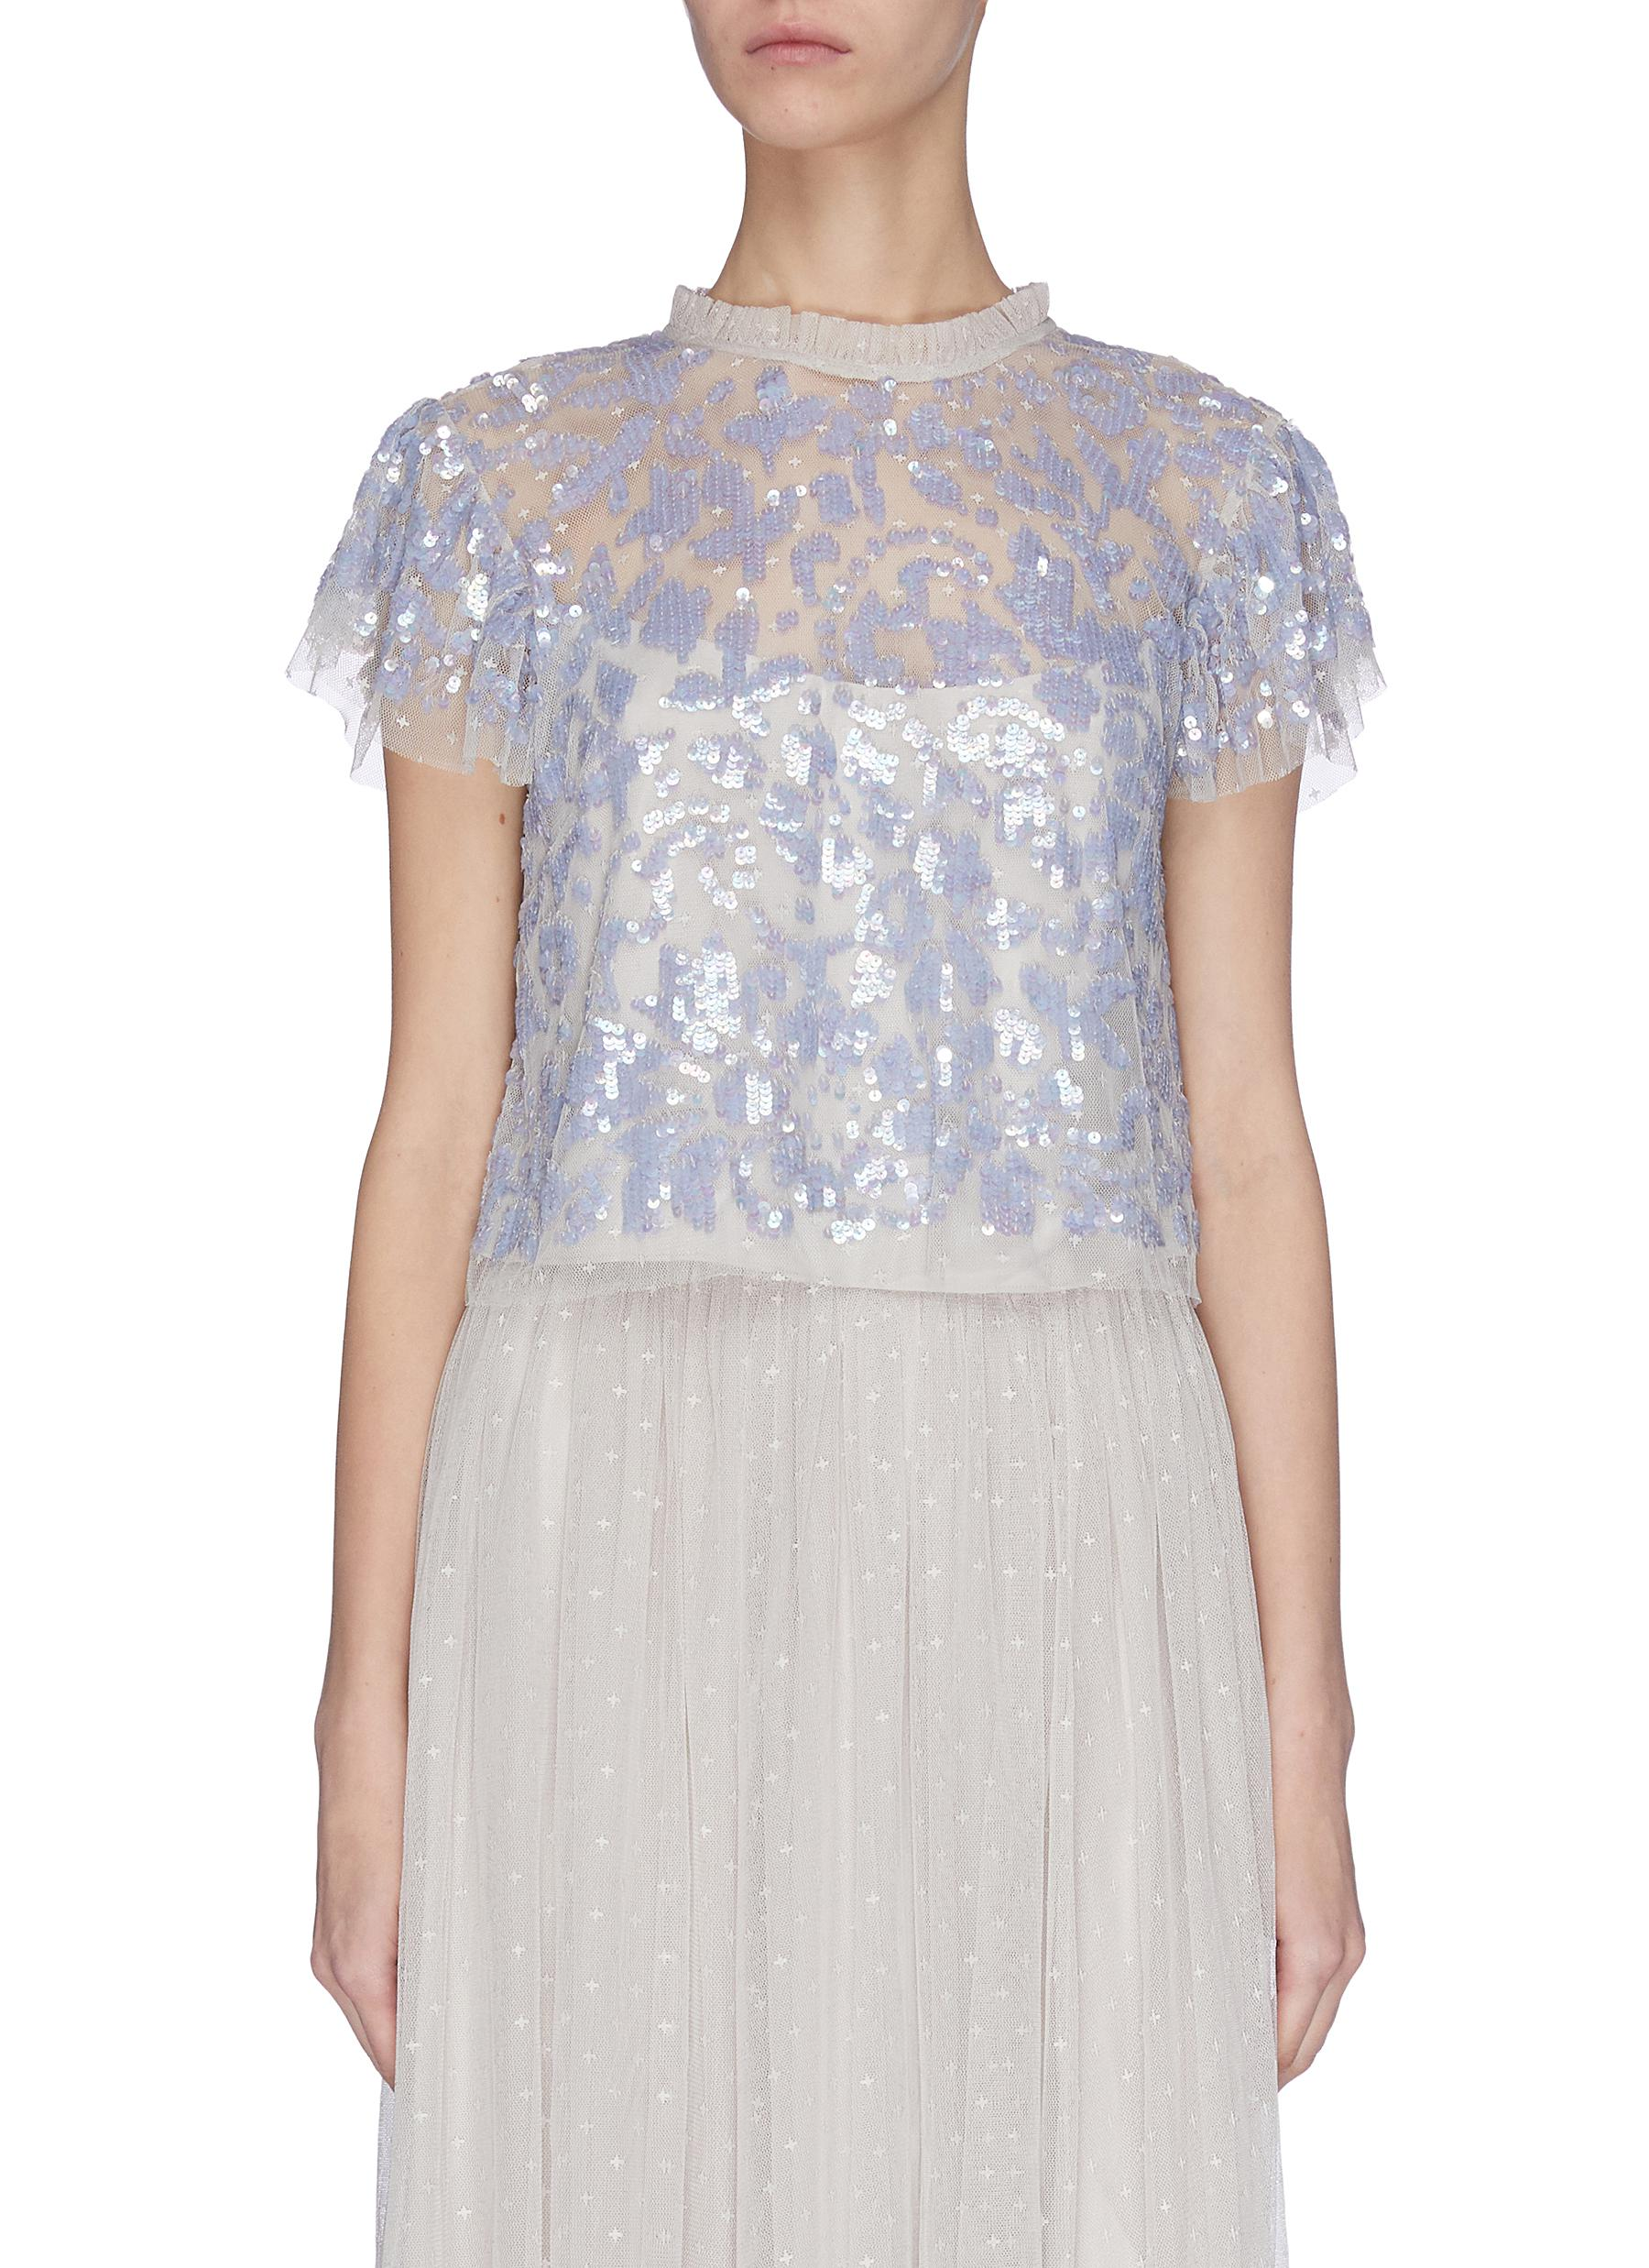 Buy Needle & Thread Tops 'Tempest' sequin embroidered short sleeve sheer top